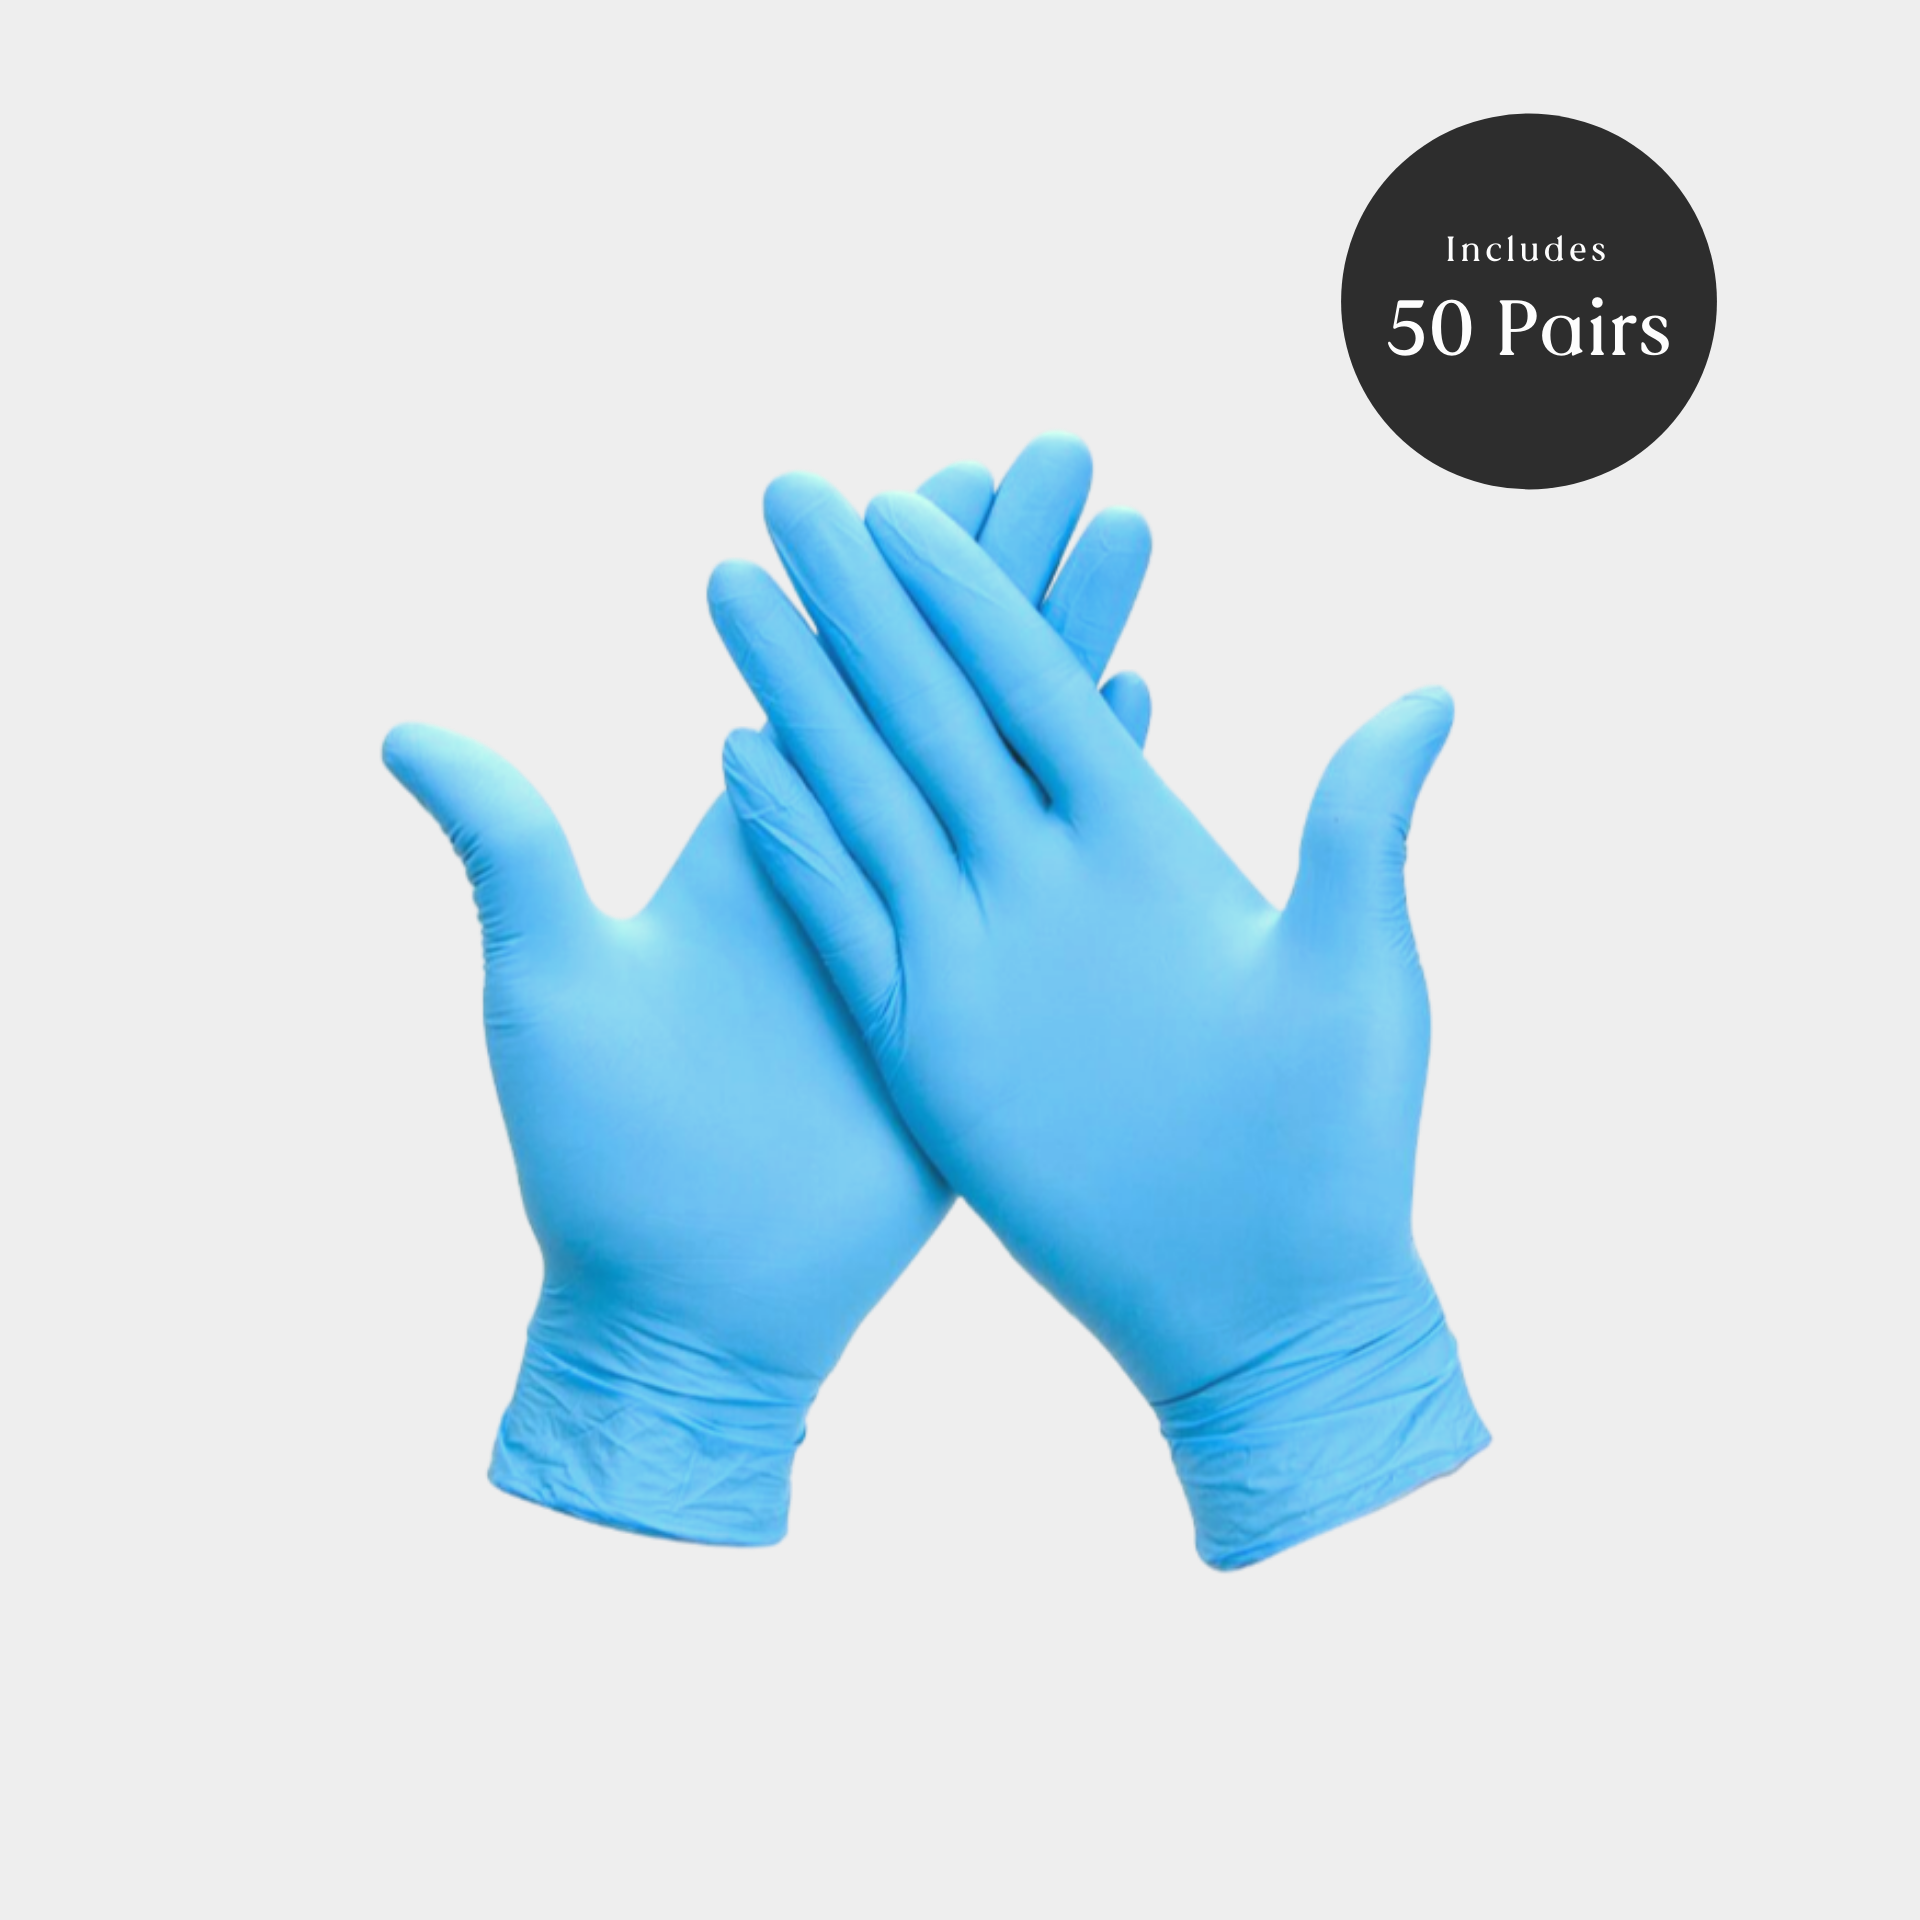 Nitrile Gloves - 50 Pairs